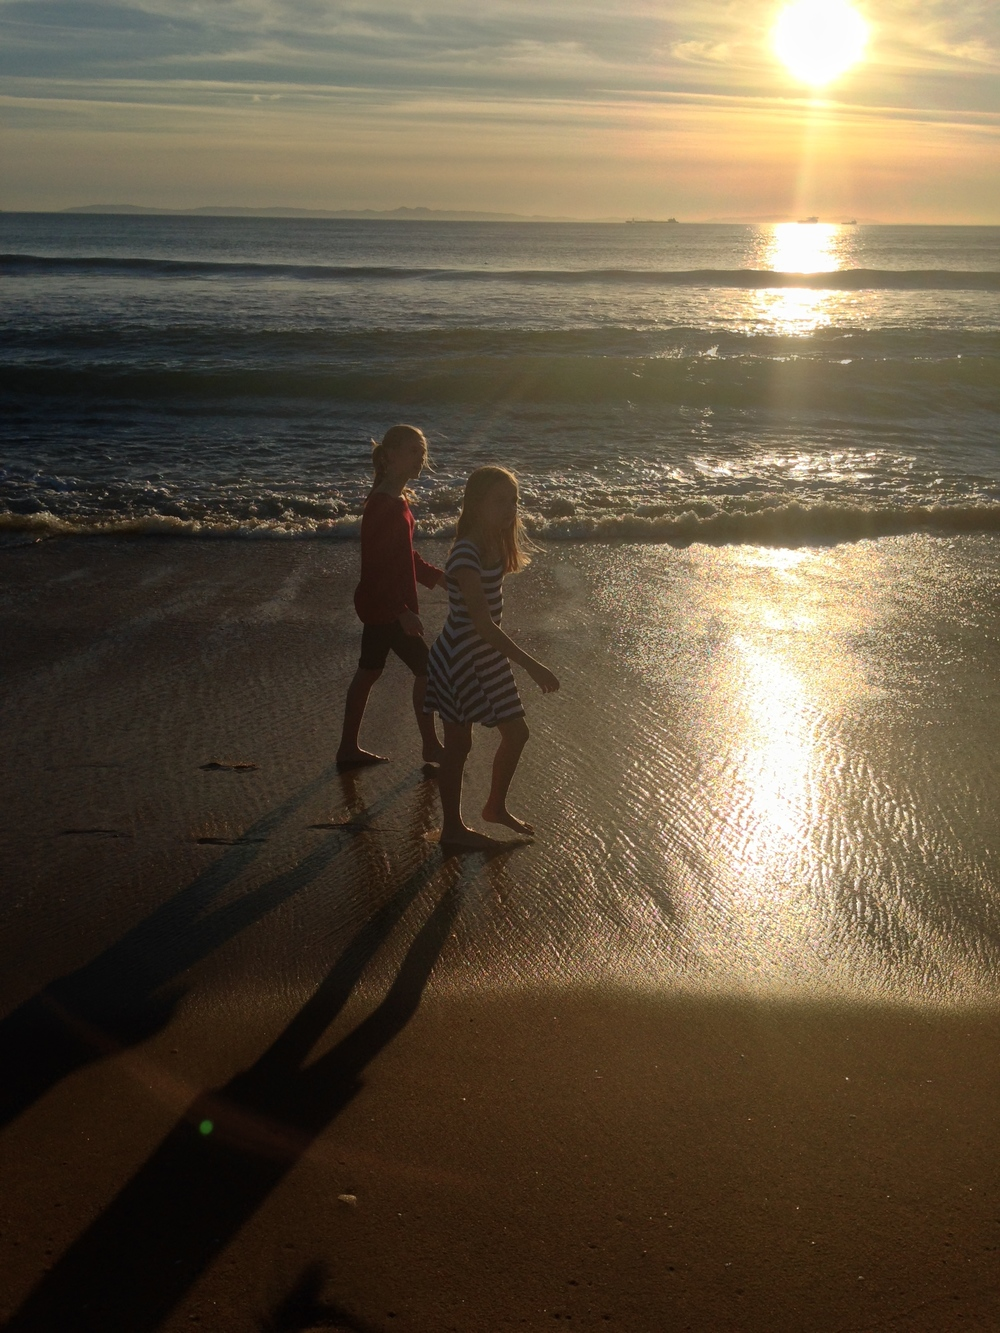 My girls walk on water -- this time south of Long Beach, CA in December.